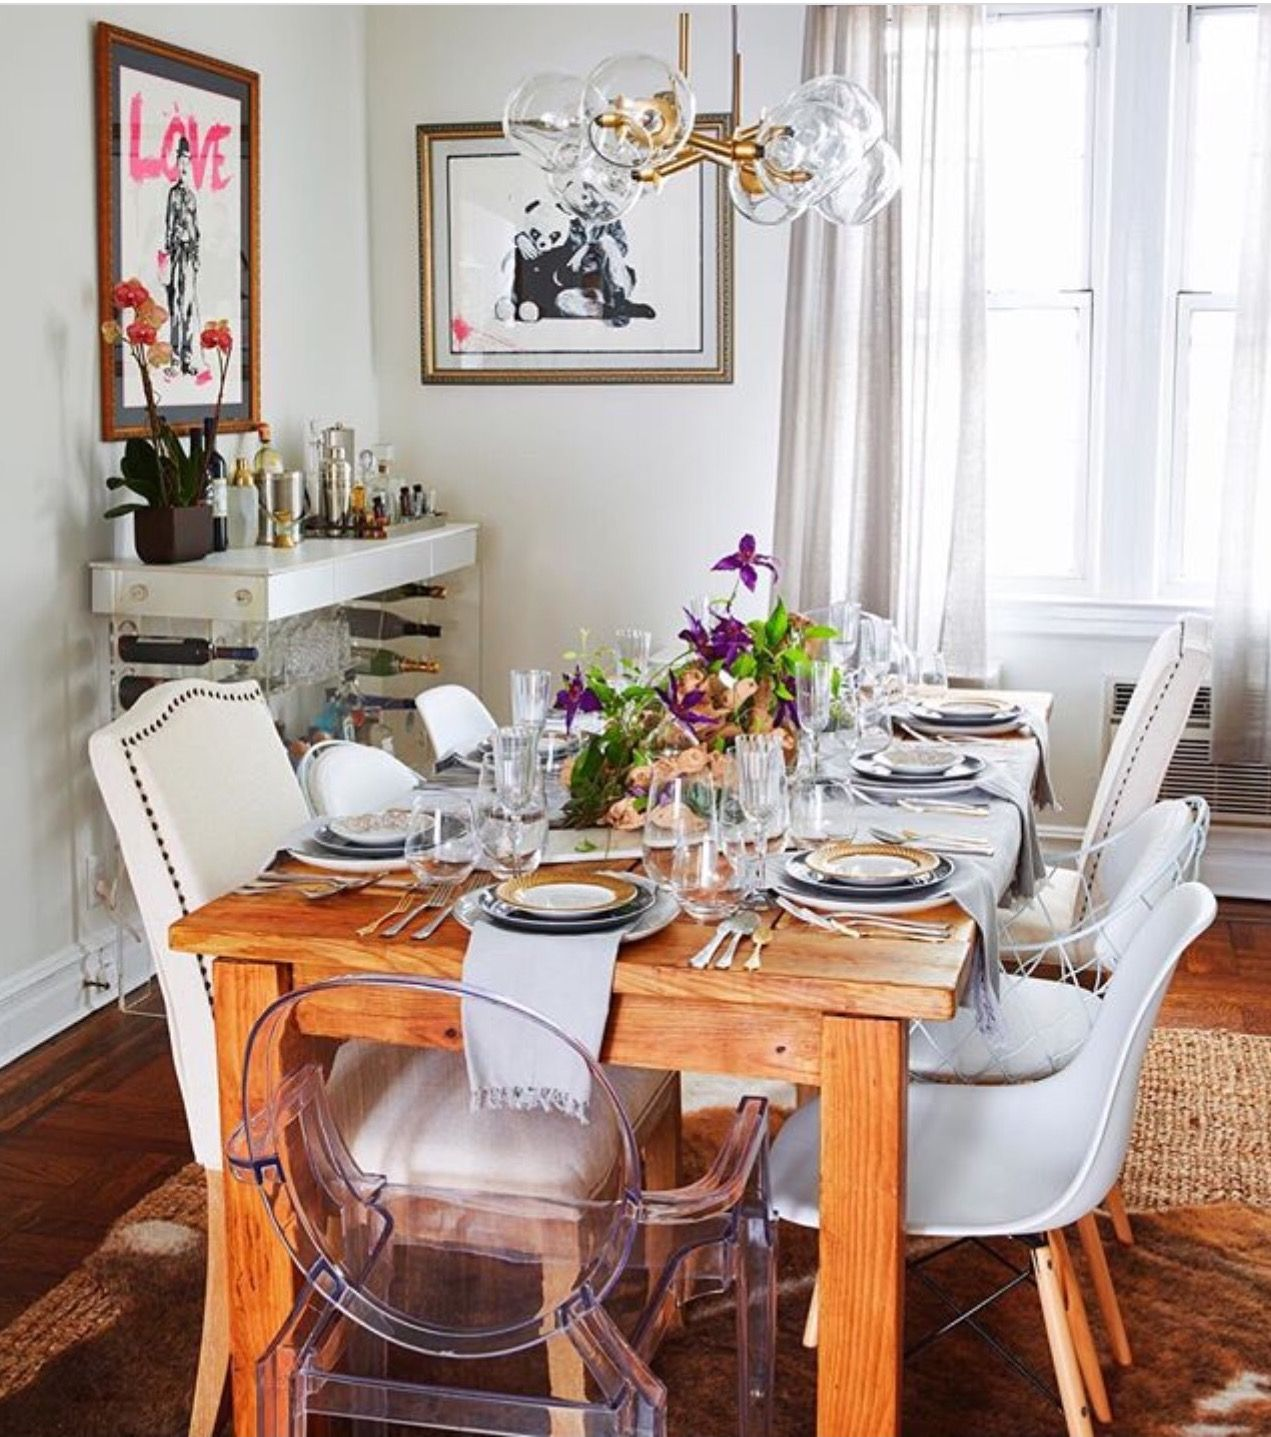 An Eclectic Mix Of Chairs And Materials Make Up This Warm Inviting Brooklyn Dining Room